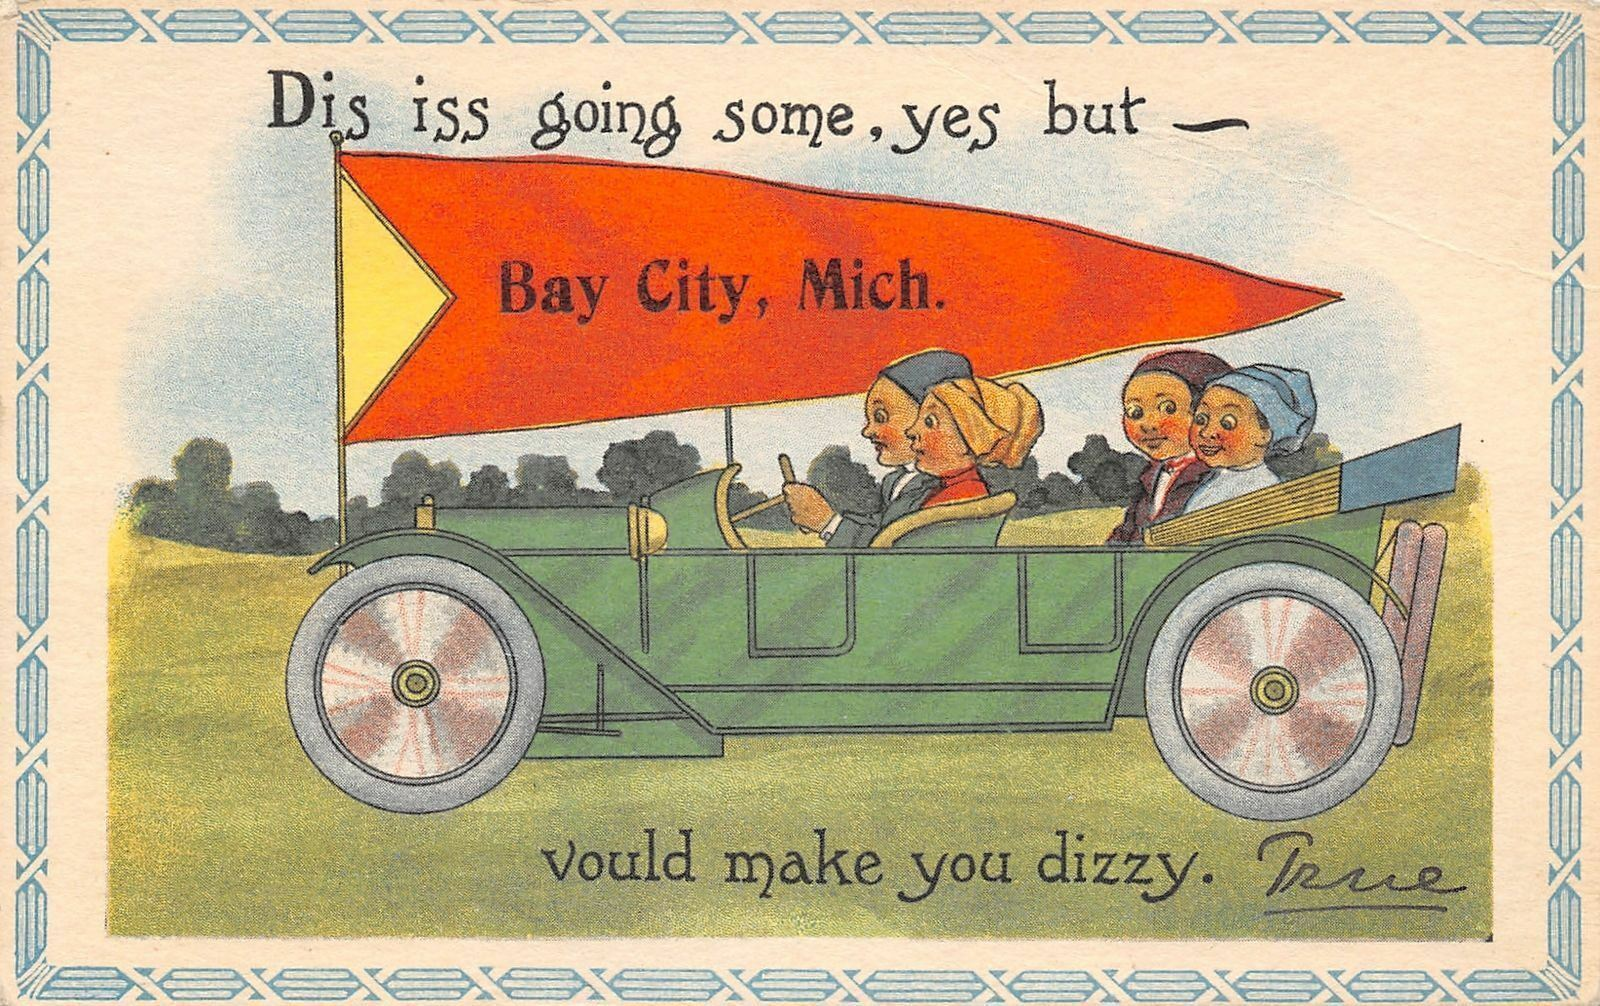 Bay City MI Dis Iss Going Some, But Vould Make You Dizzy~Couple in Auto 1914